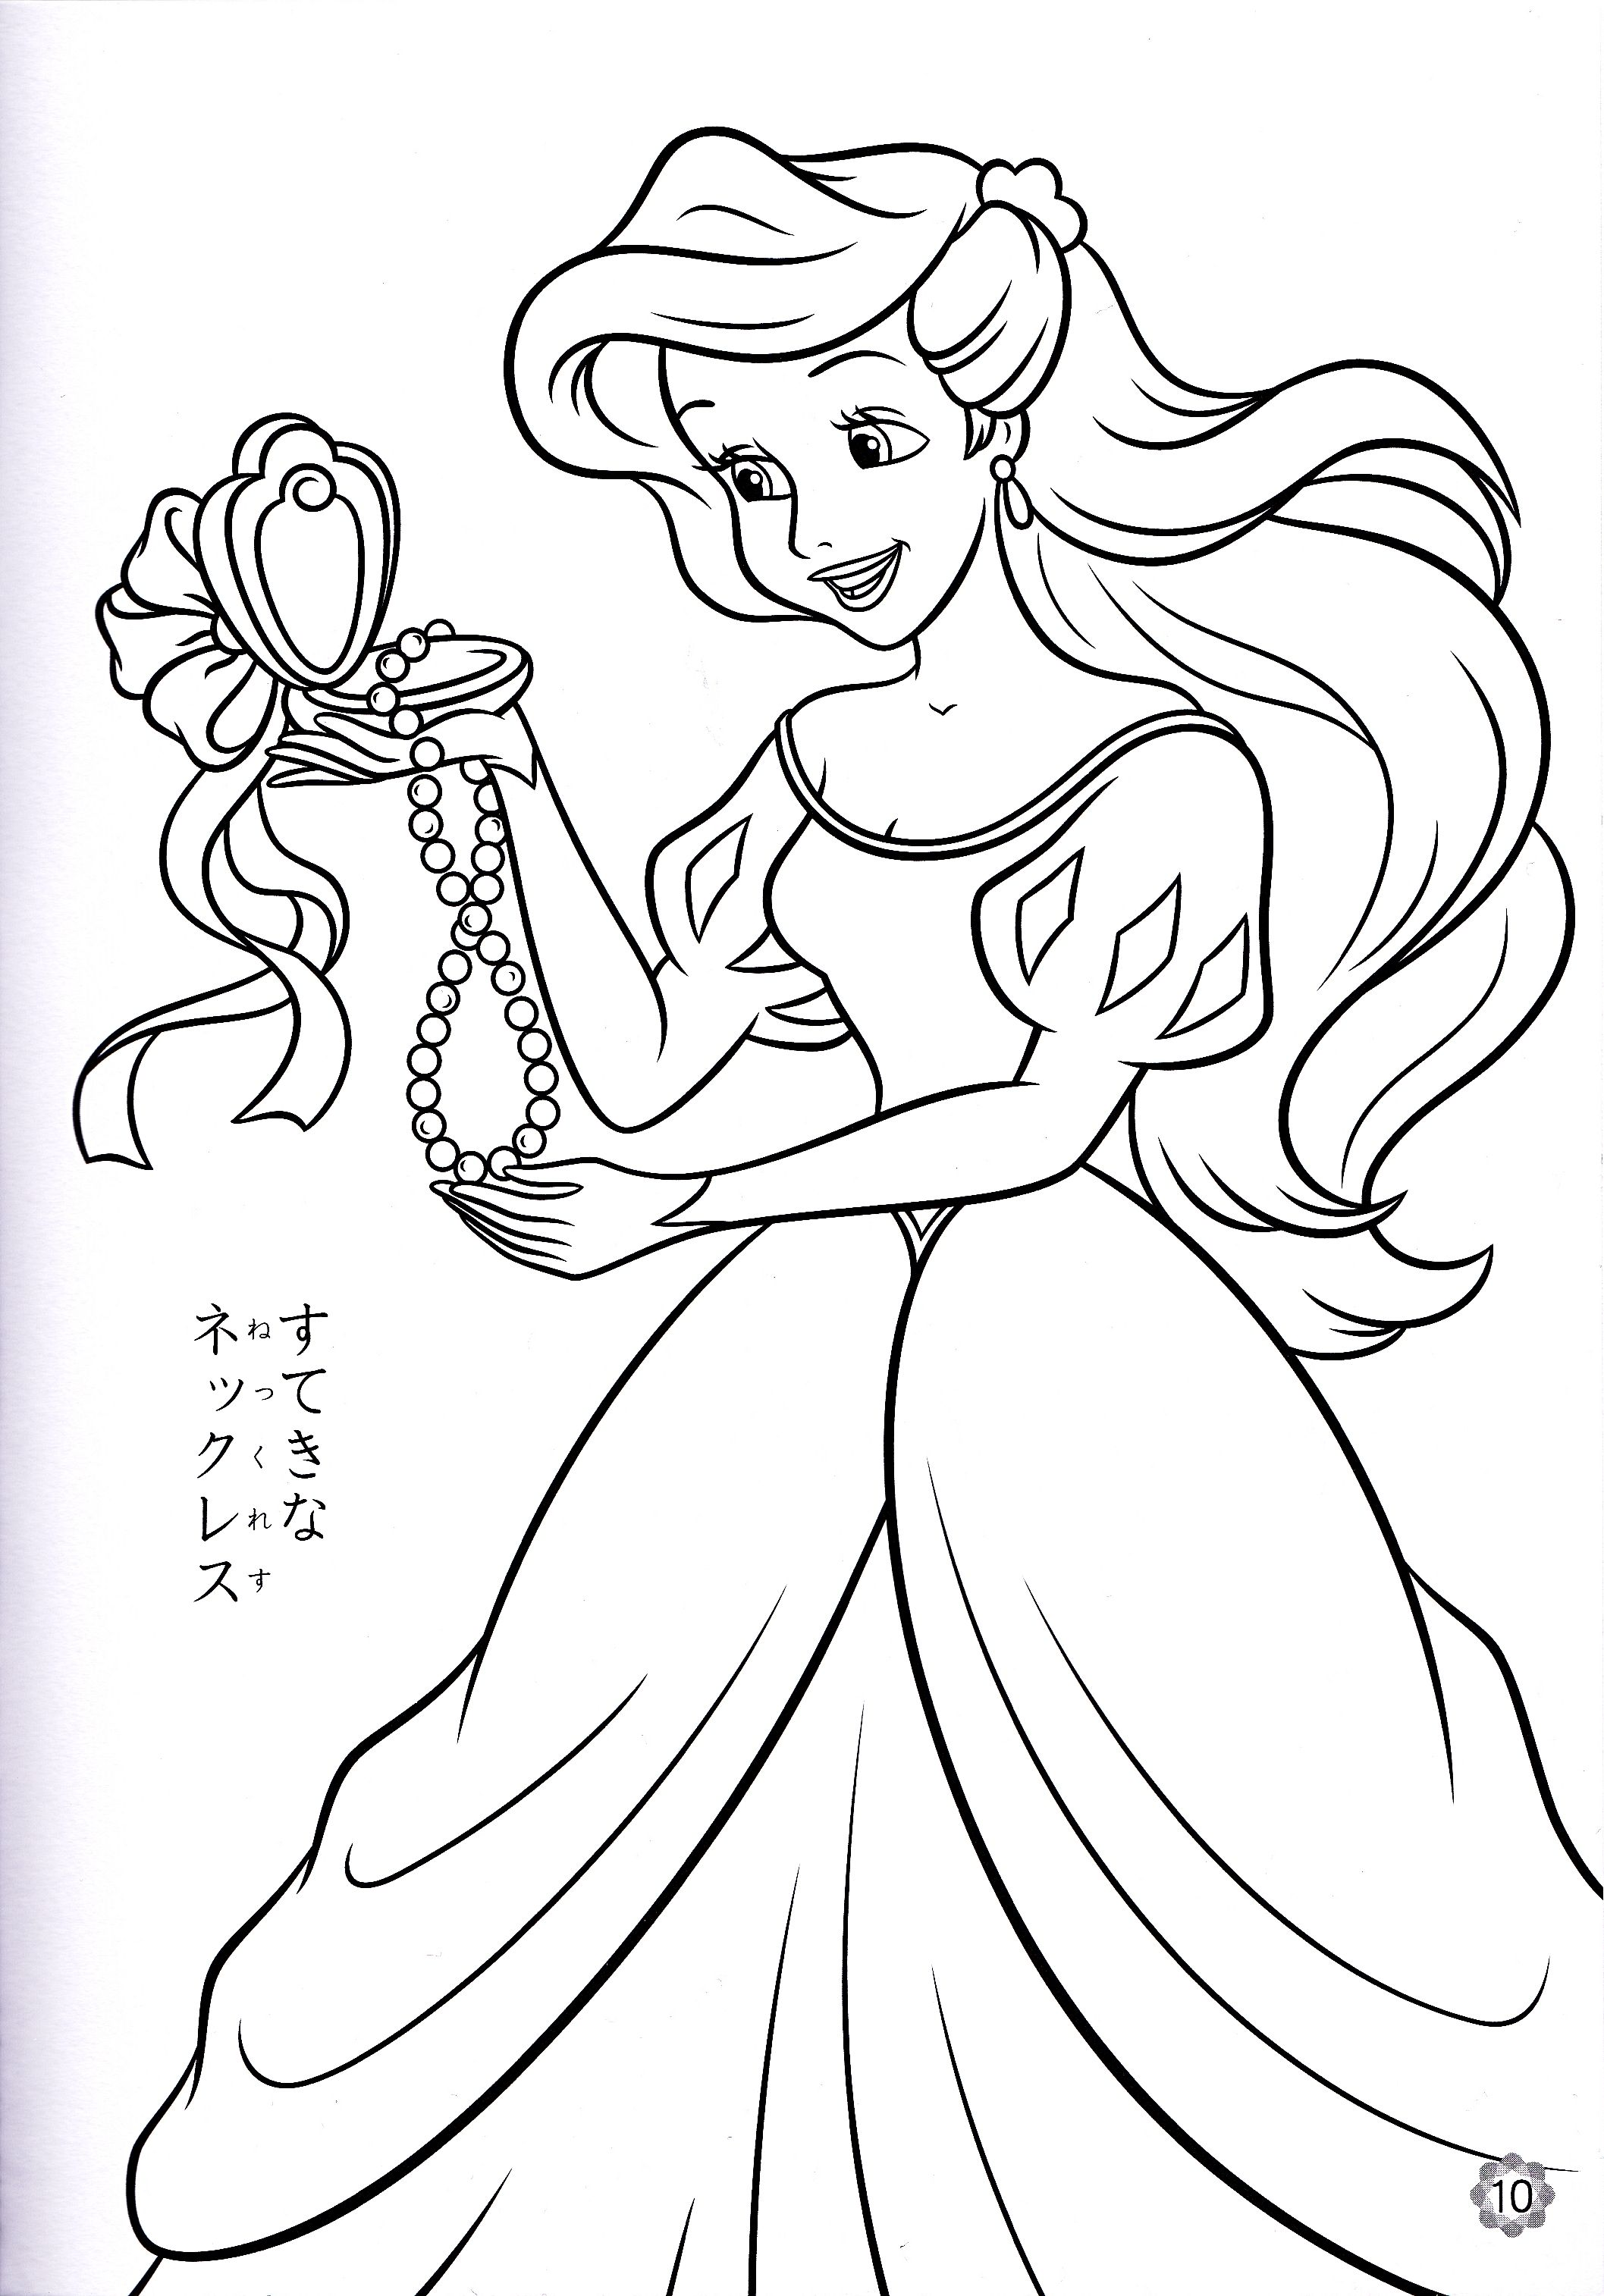 Princess Ariel Printable Coloring Pages Mermaid Coloring Pages Ariel Coloring Pages Disney Princess Coloring Pages